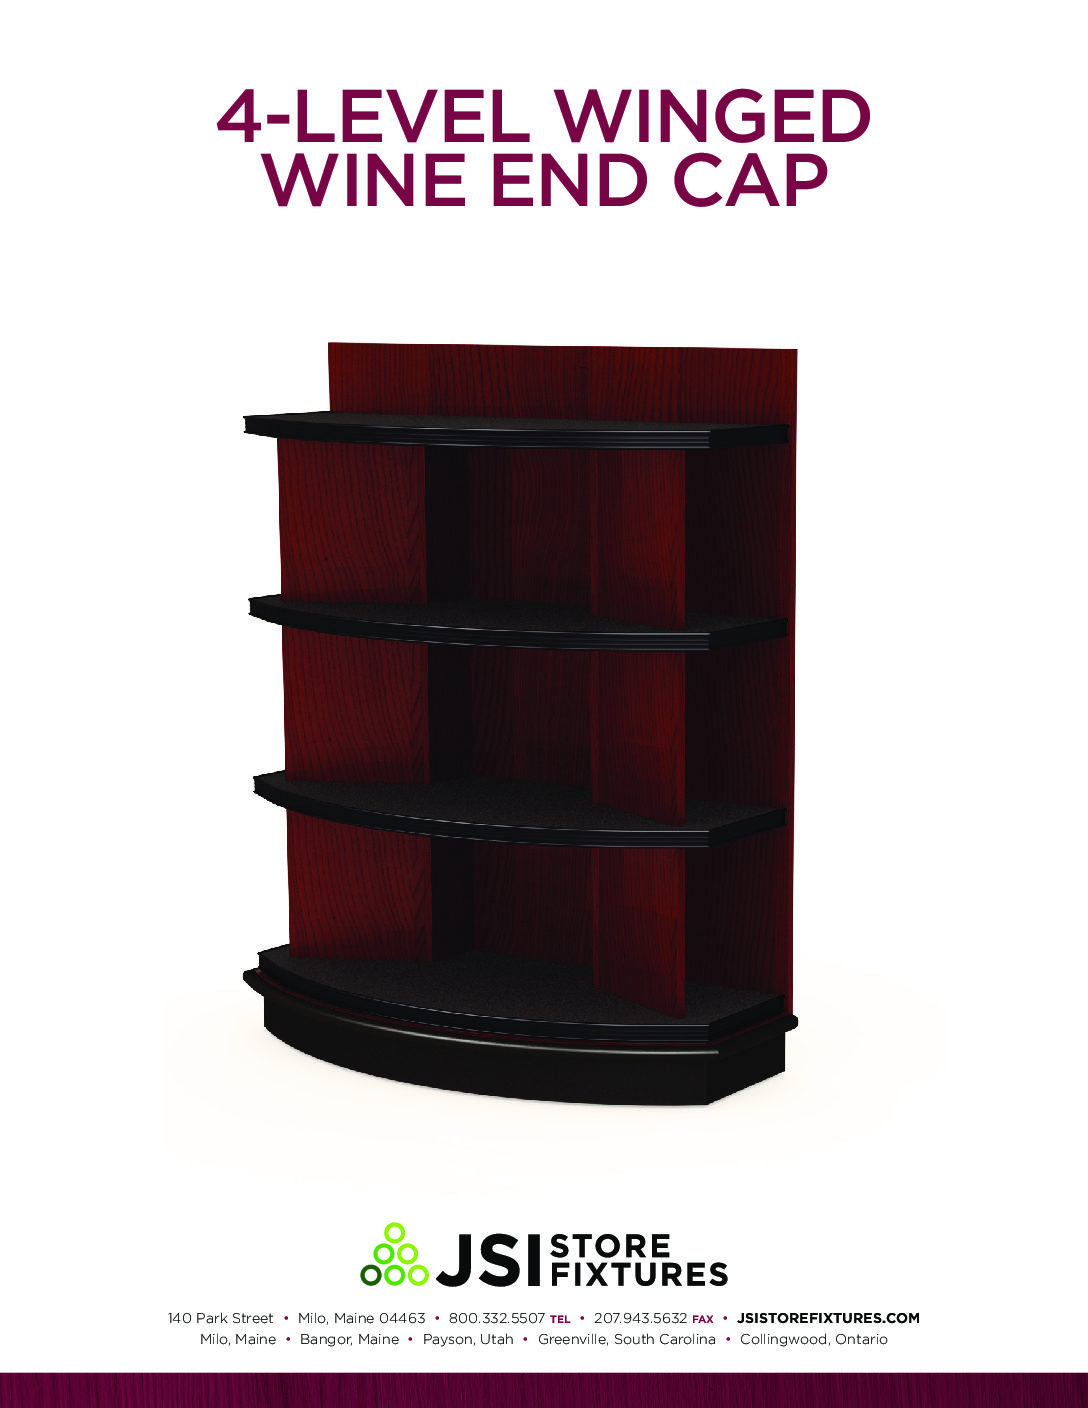 4-Level Winged Wine End Cap